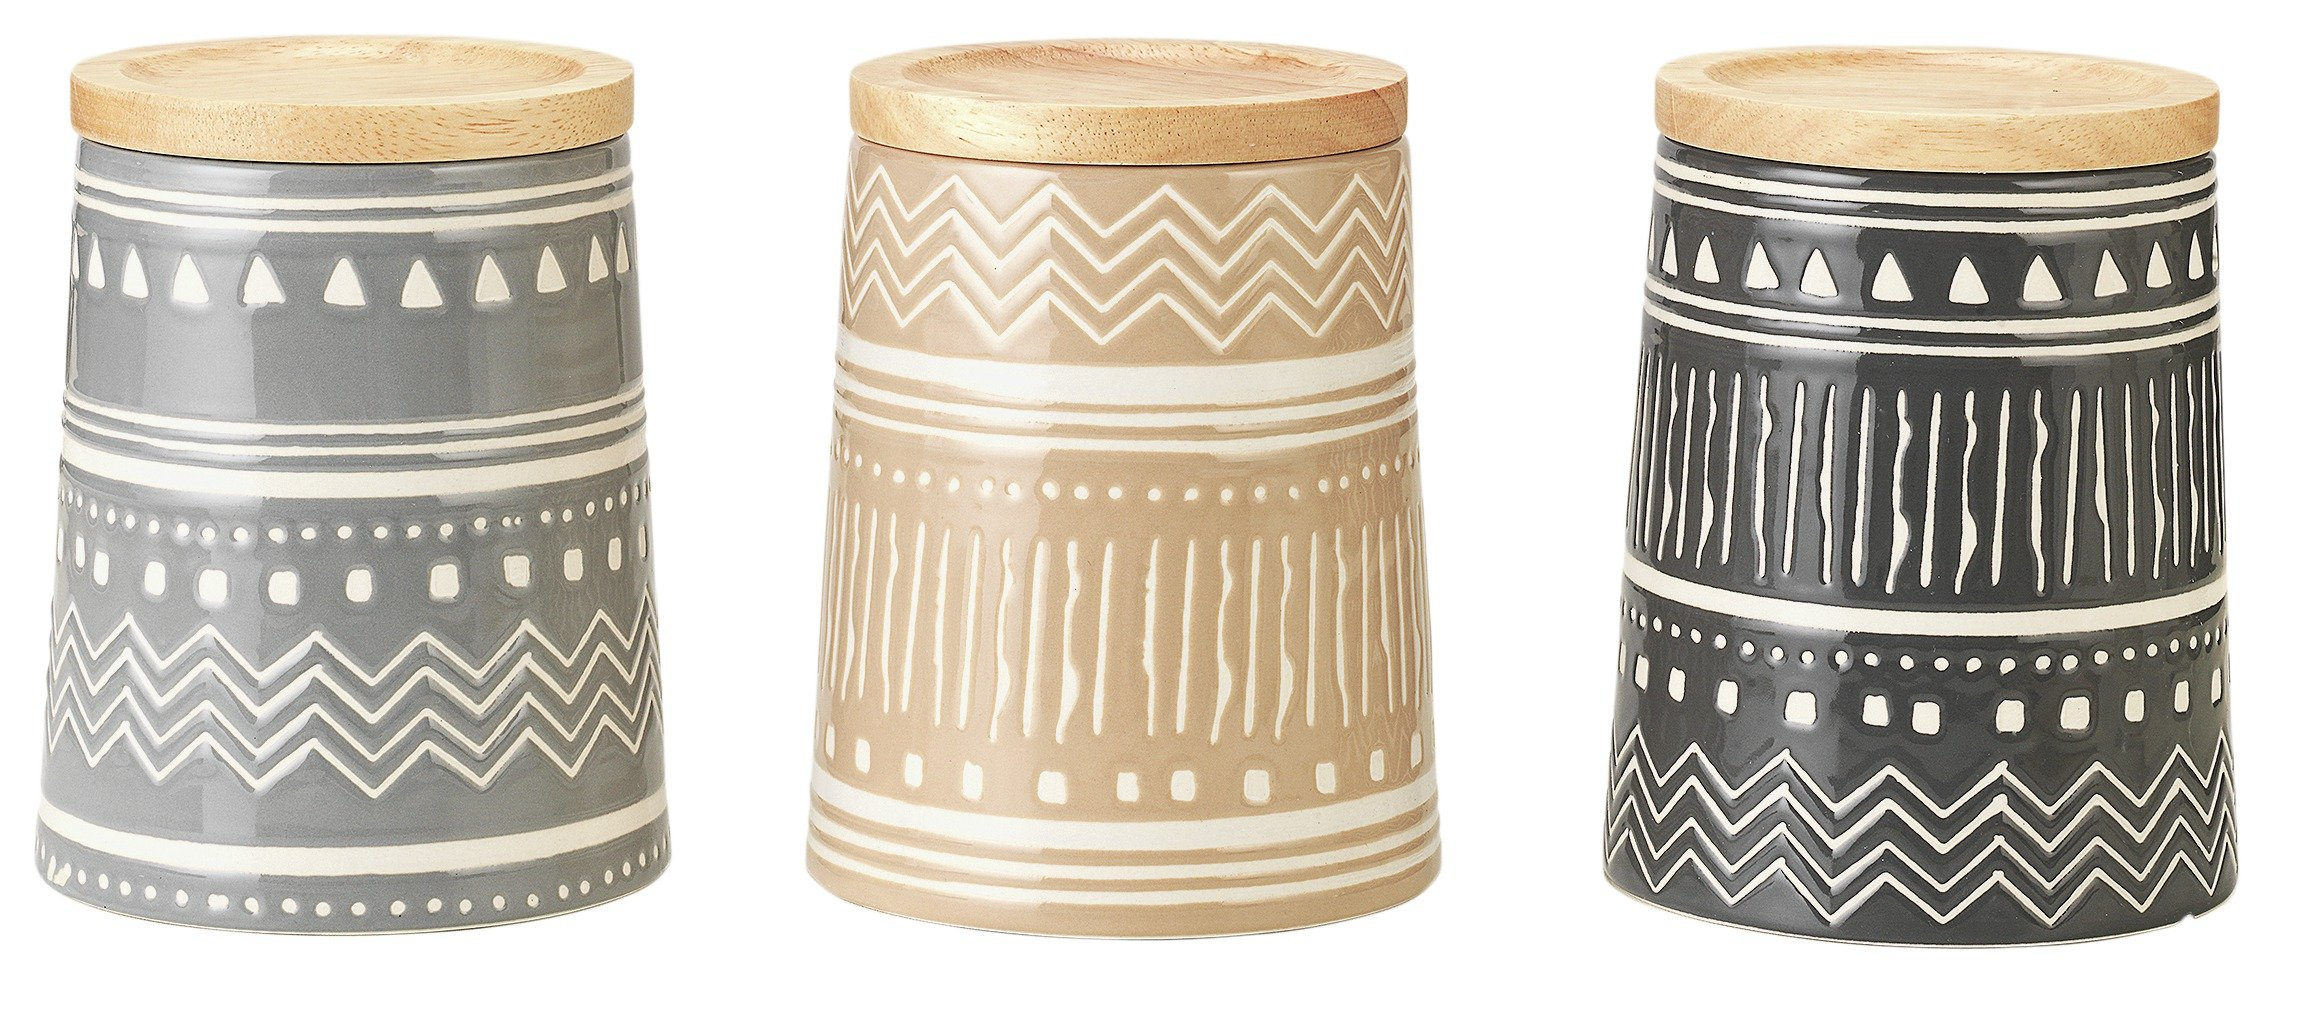 Heart of House Navajo Set of 3 Stoneware Storage Jars